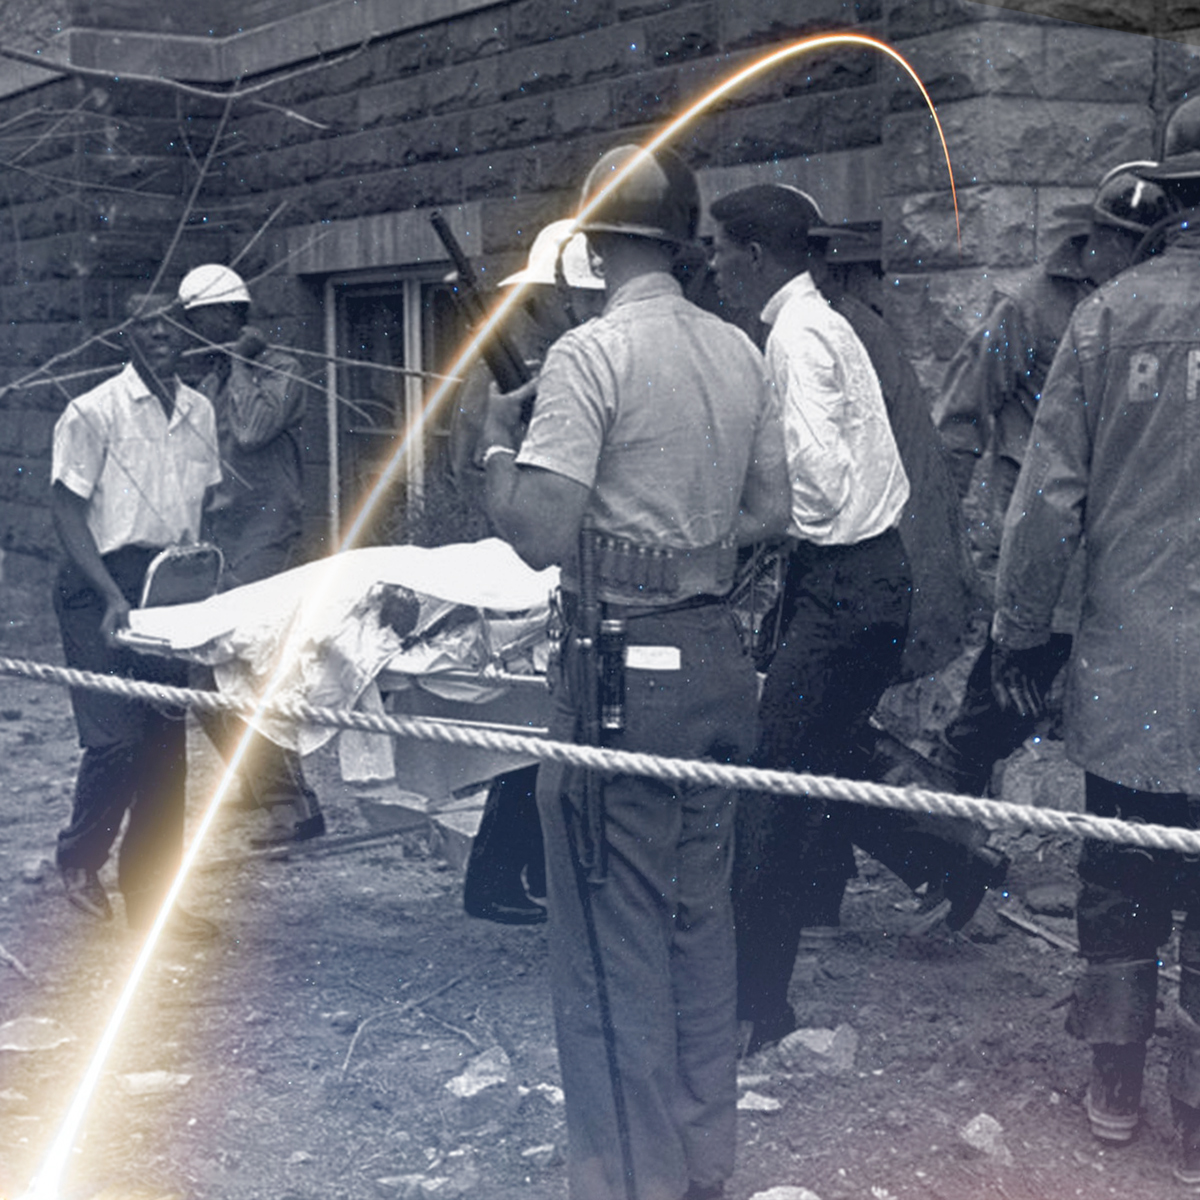 Sixteenth Street Baptist Church Bombing / Birmingham, AL / September 15, 1963